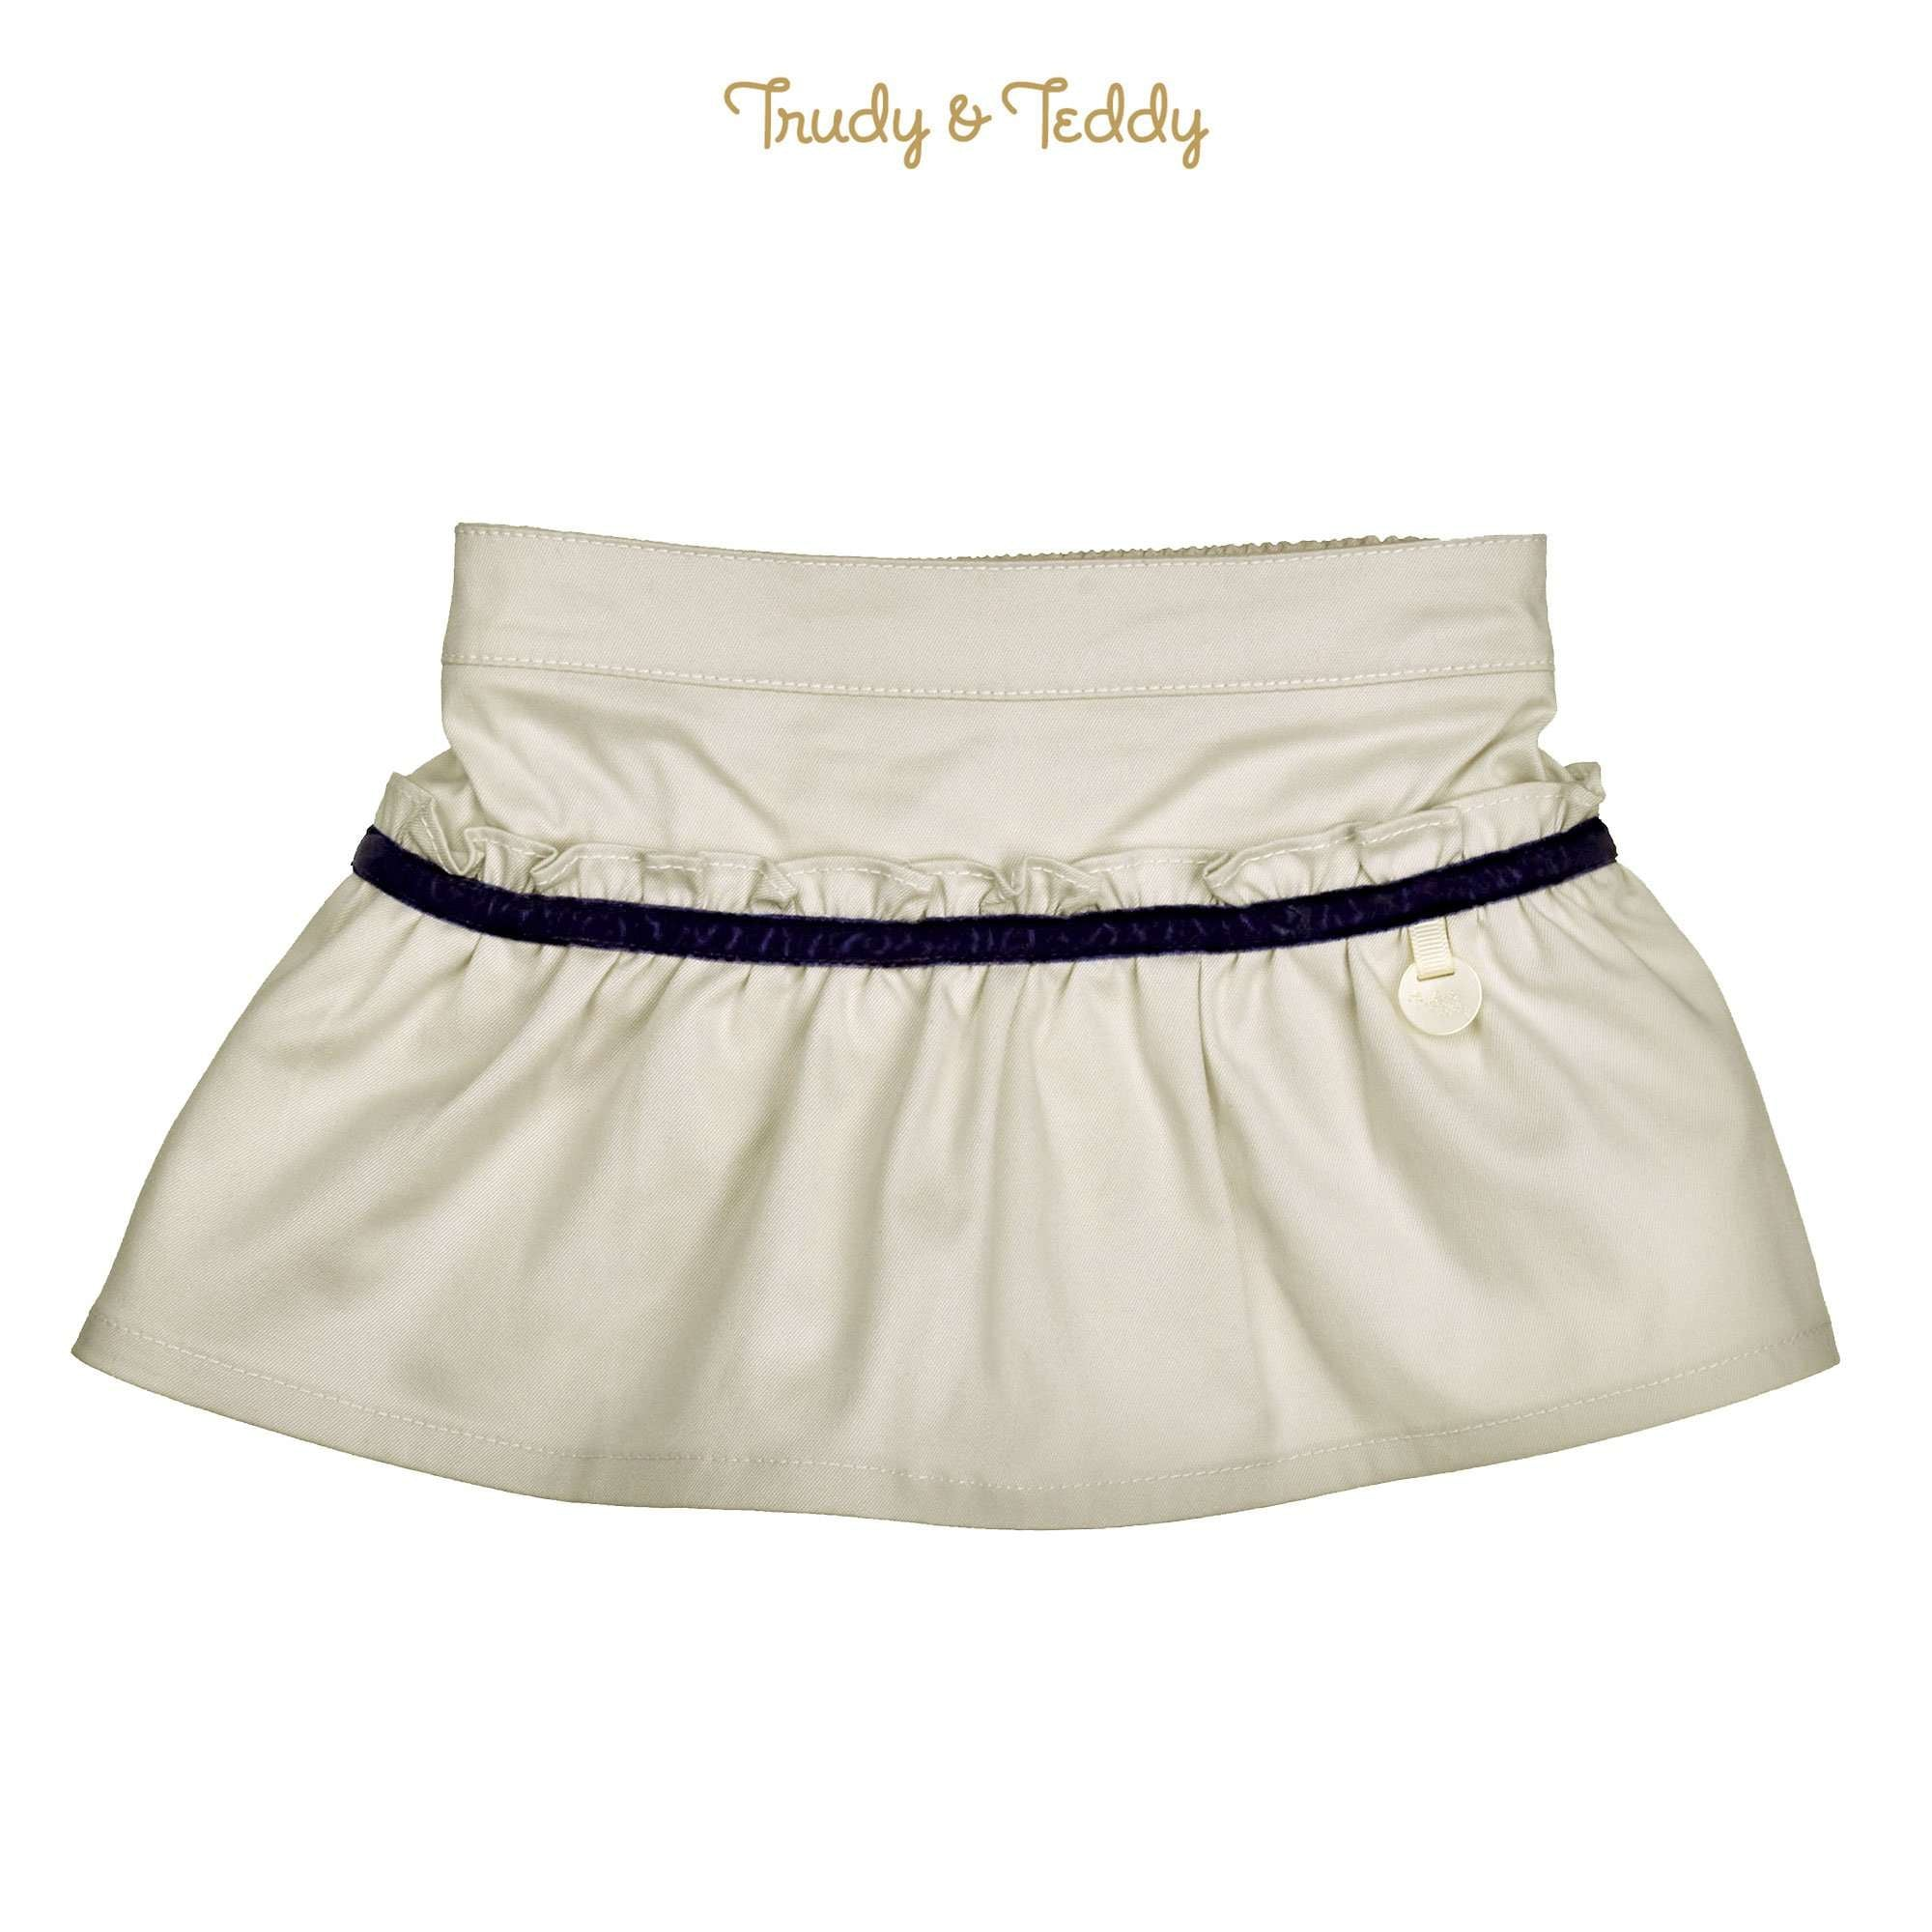 Trudy & Teddy Baby Girl Woven Skirt with Panty 810102-261 : Buy Trudy & Teddy online at CMG.MY